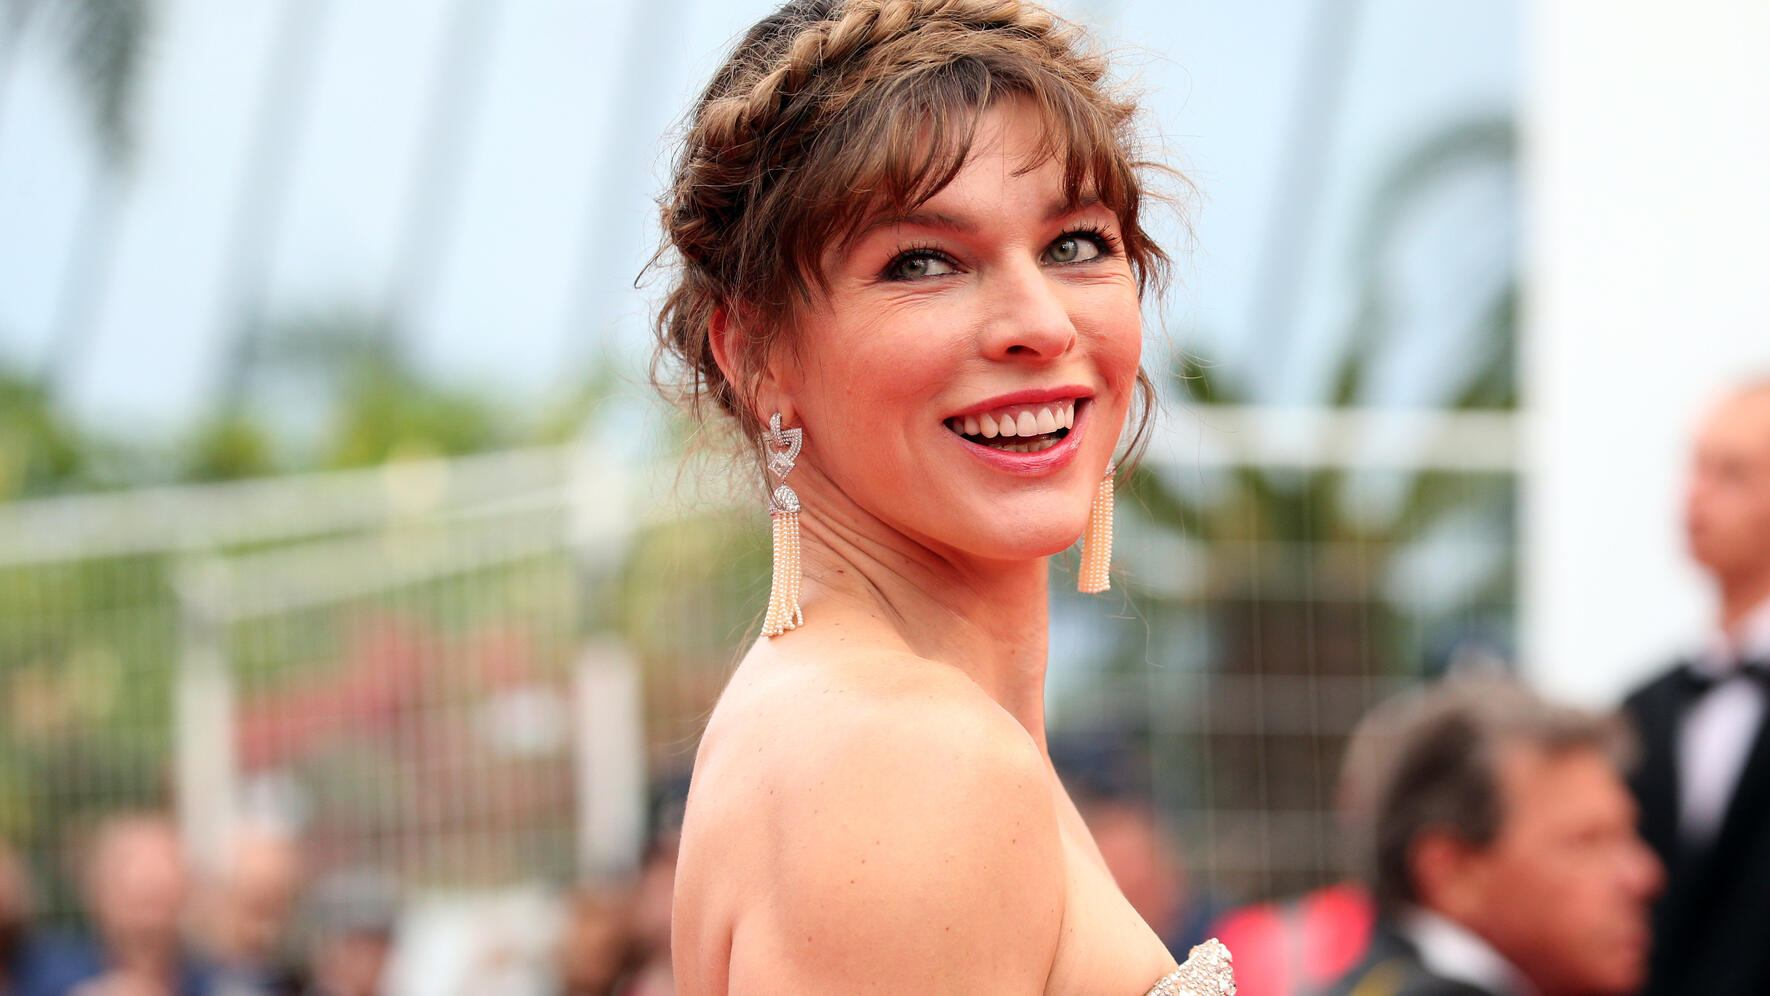 """CANNES, FRANCE - MAY 24: Milla Jovovich attends the screening of """"Sibyl"""" during the 72nd annual Cannes Film Festival on May 24, 2019 in Cannes, France. (Photo by Gisela Schober/Getty Images)"""